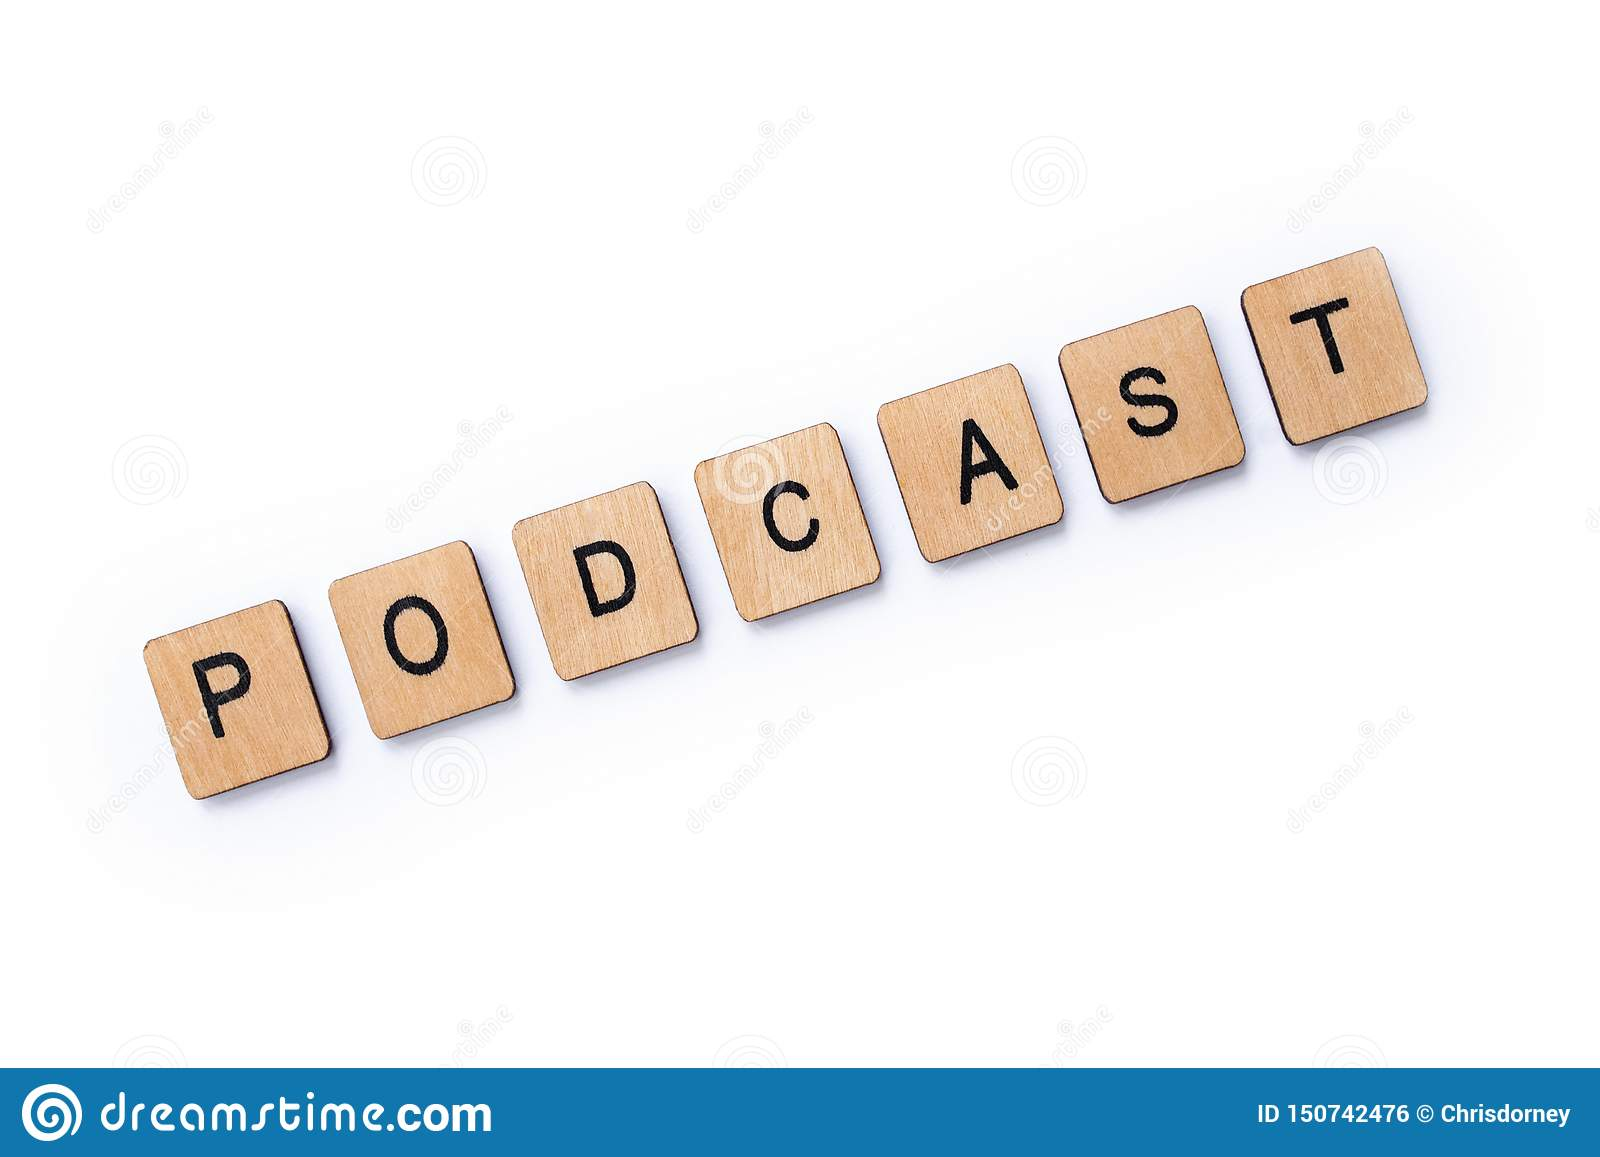 The word PODCAST